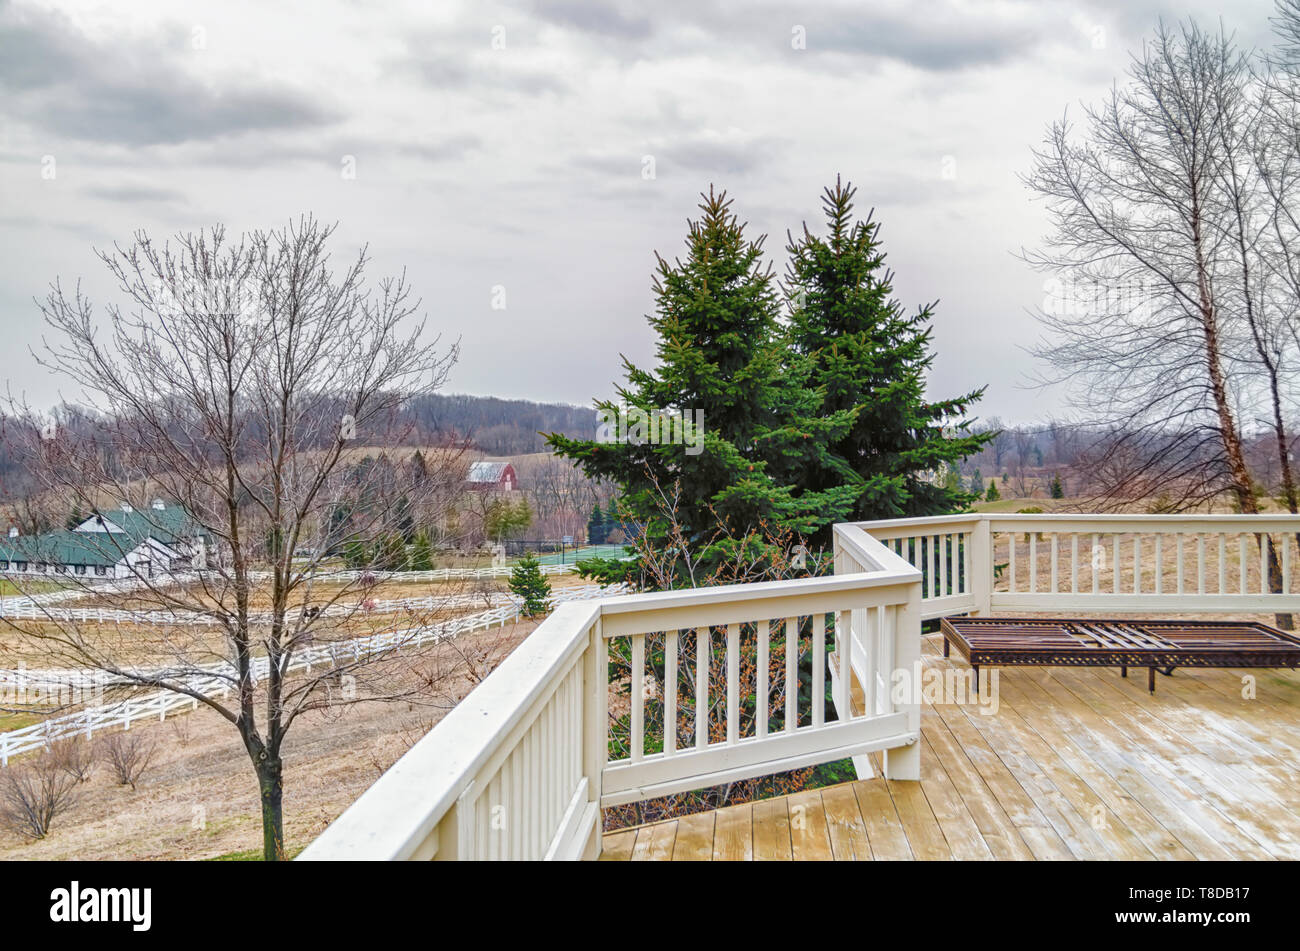 A view from the rear deck of a home. Signs of Spring in the air: tree buds and other emergences. A horse ranch can be seen in the distance. - Stock Image